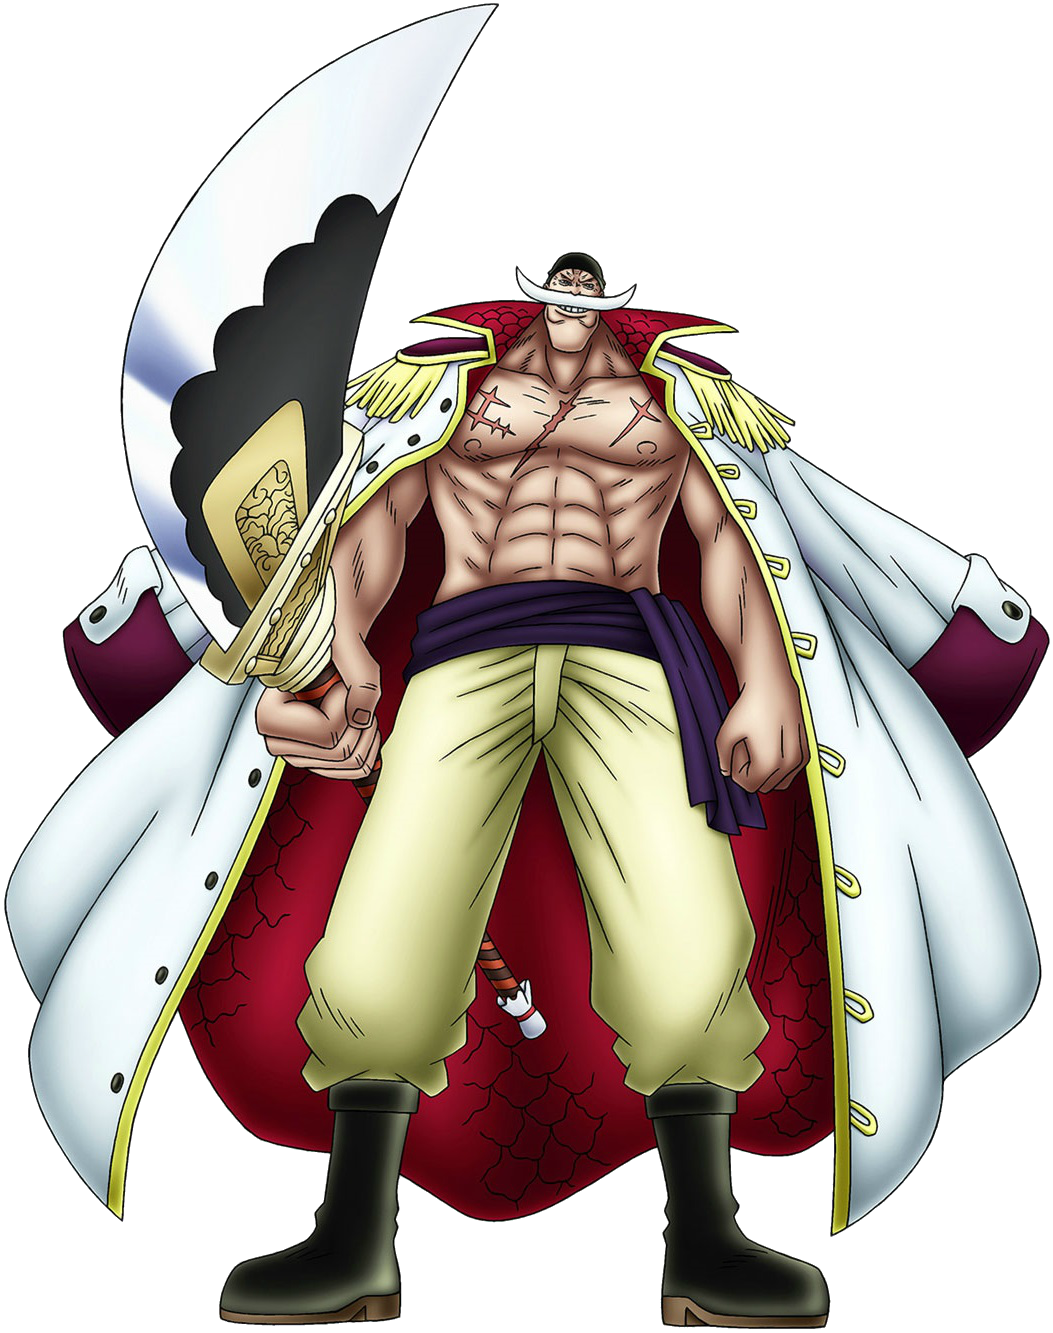 Image Whitebeard Edward Newgate One Piece Png Fictional Battle Omniverse Wikia Fandom